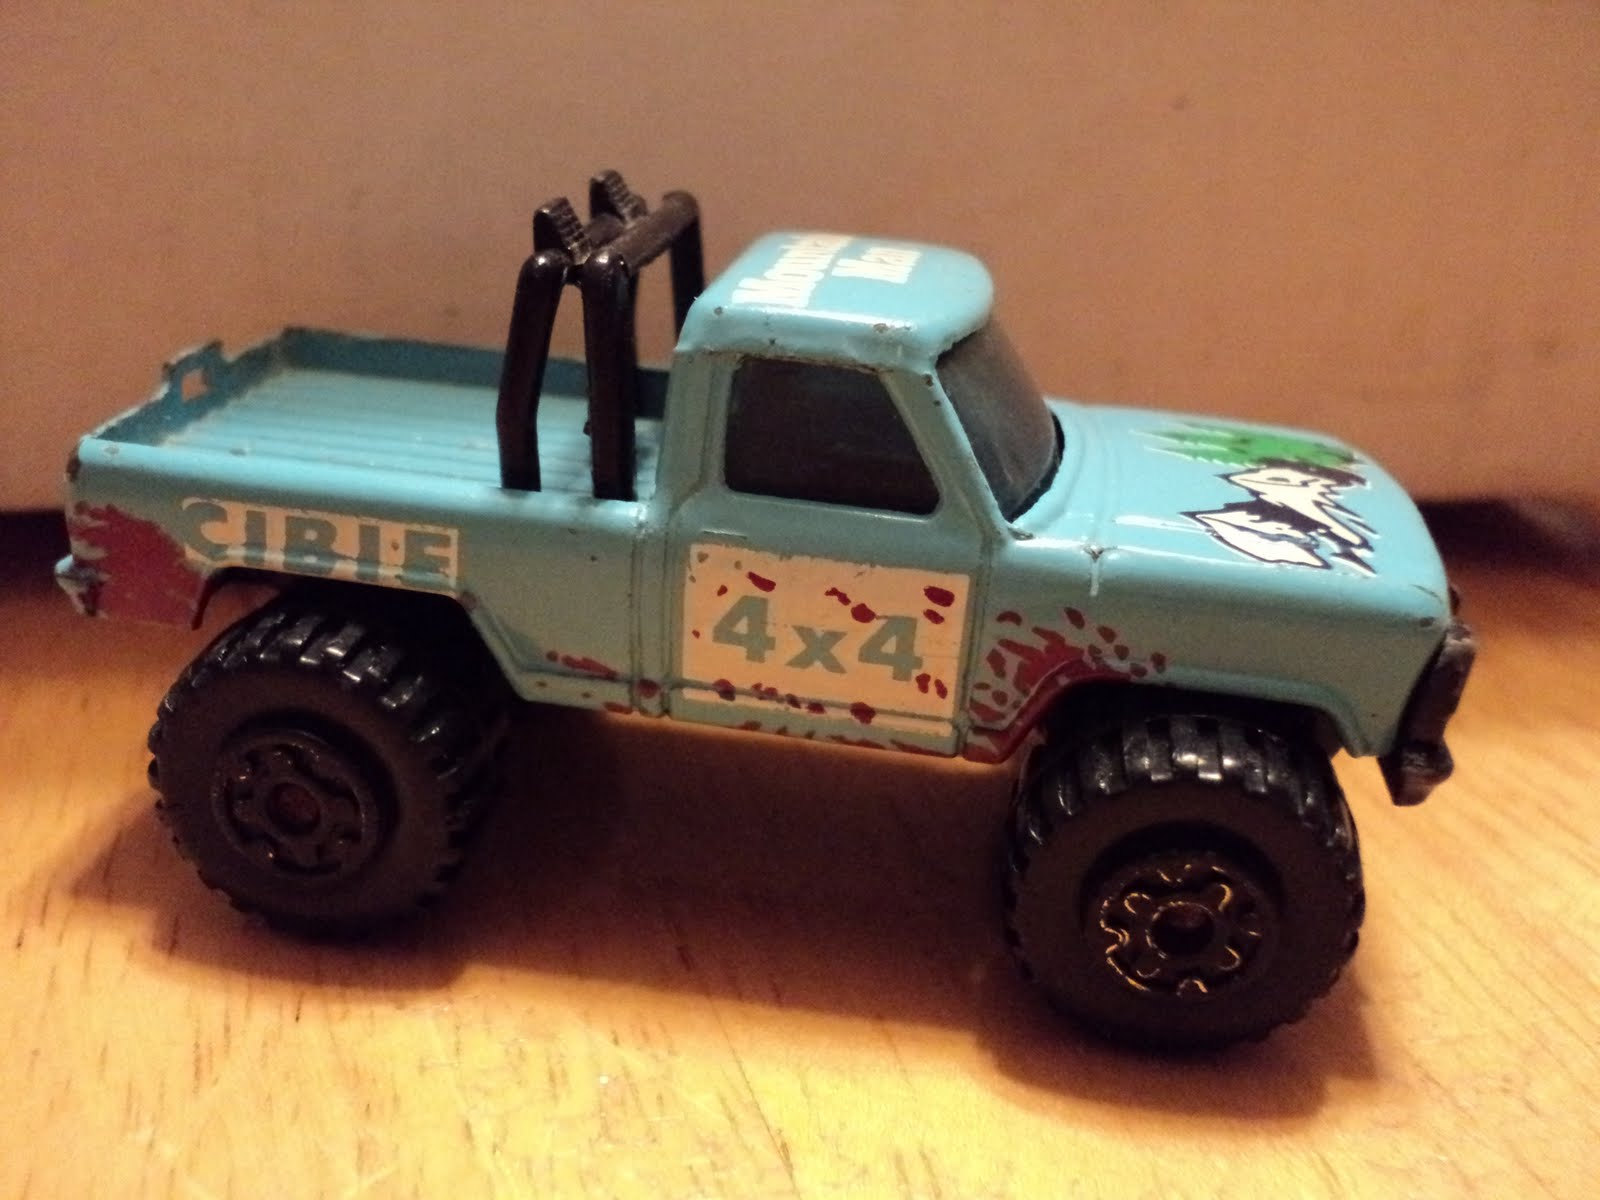 Jason S Classic Hot Wheels Matchbox And Other Brands